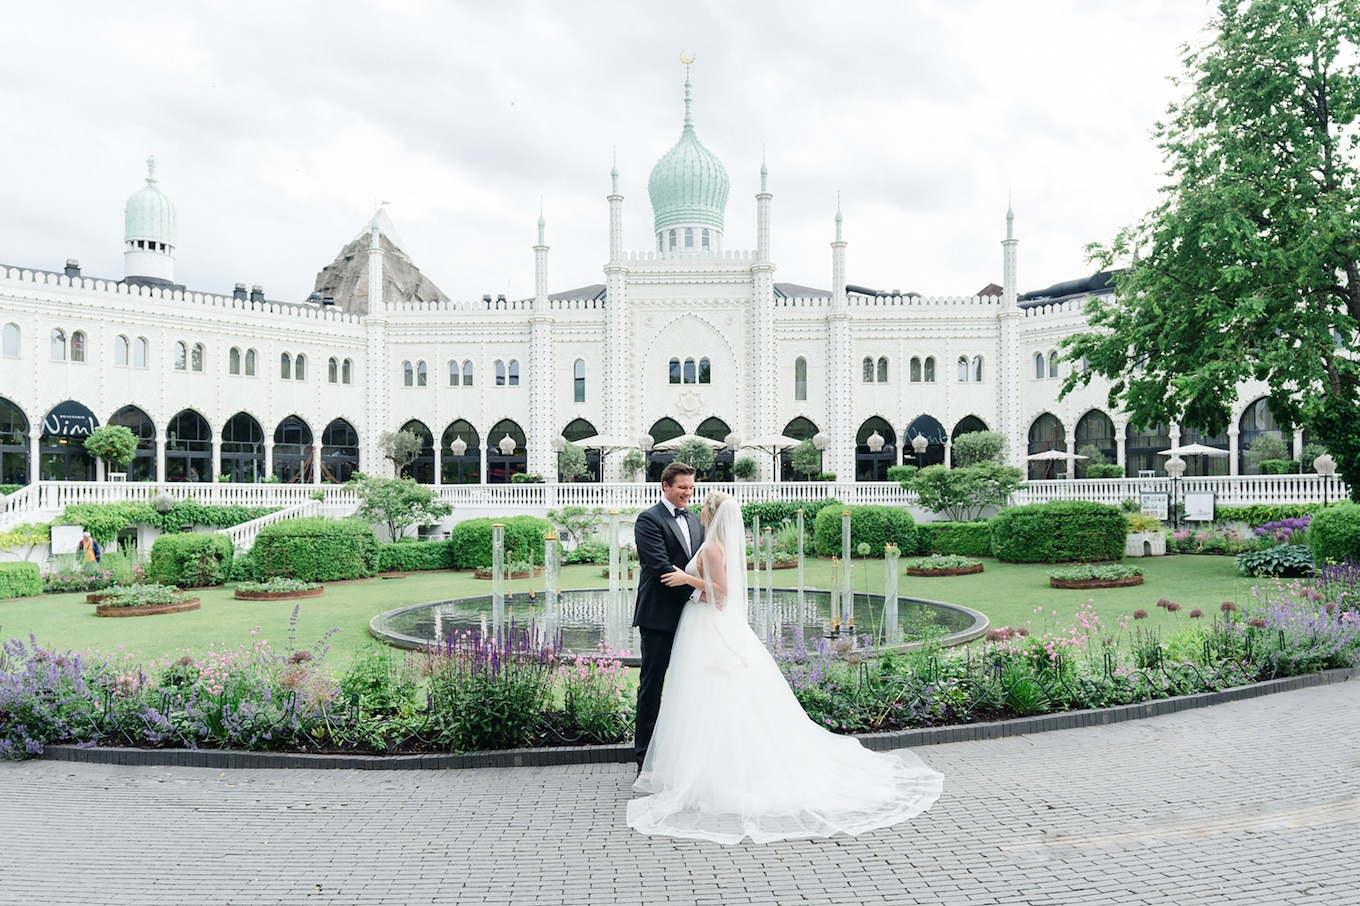 sandra aberg sony alpha 7r3 the bride and the groom hold one another in front of a luxurious garden and building